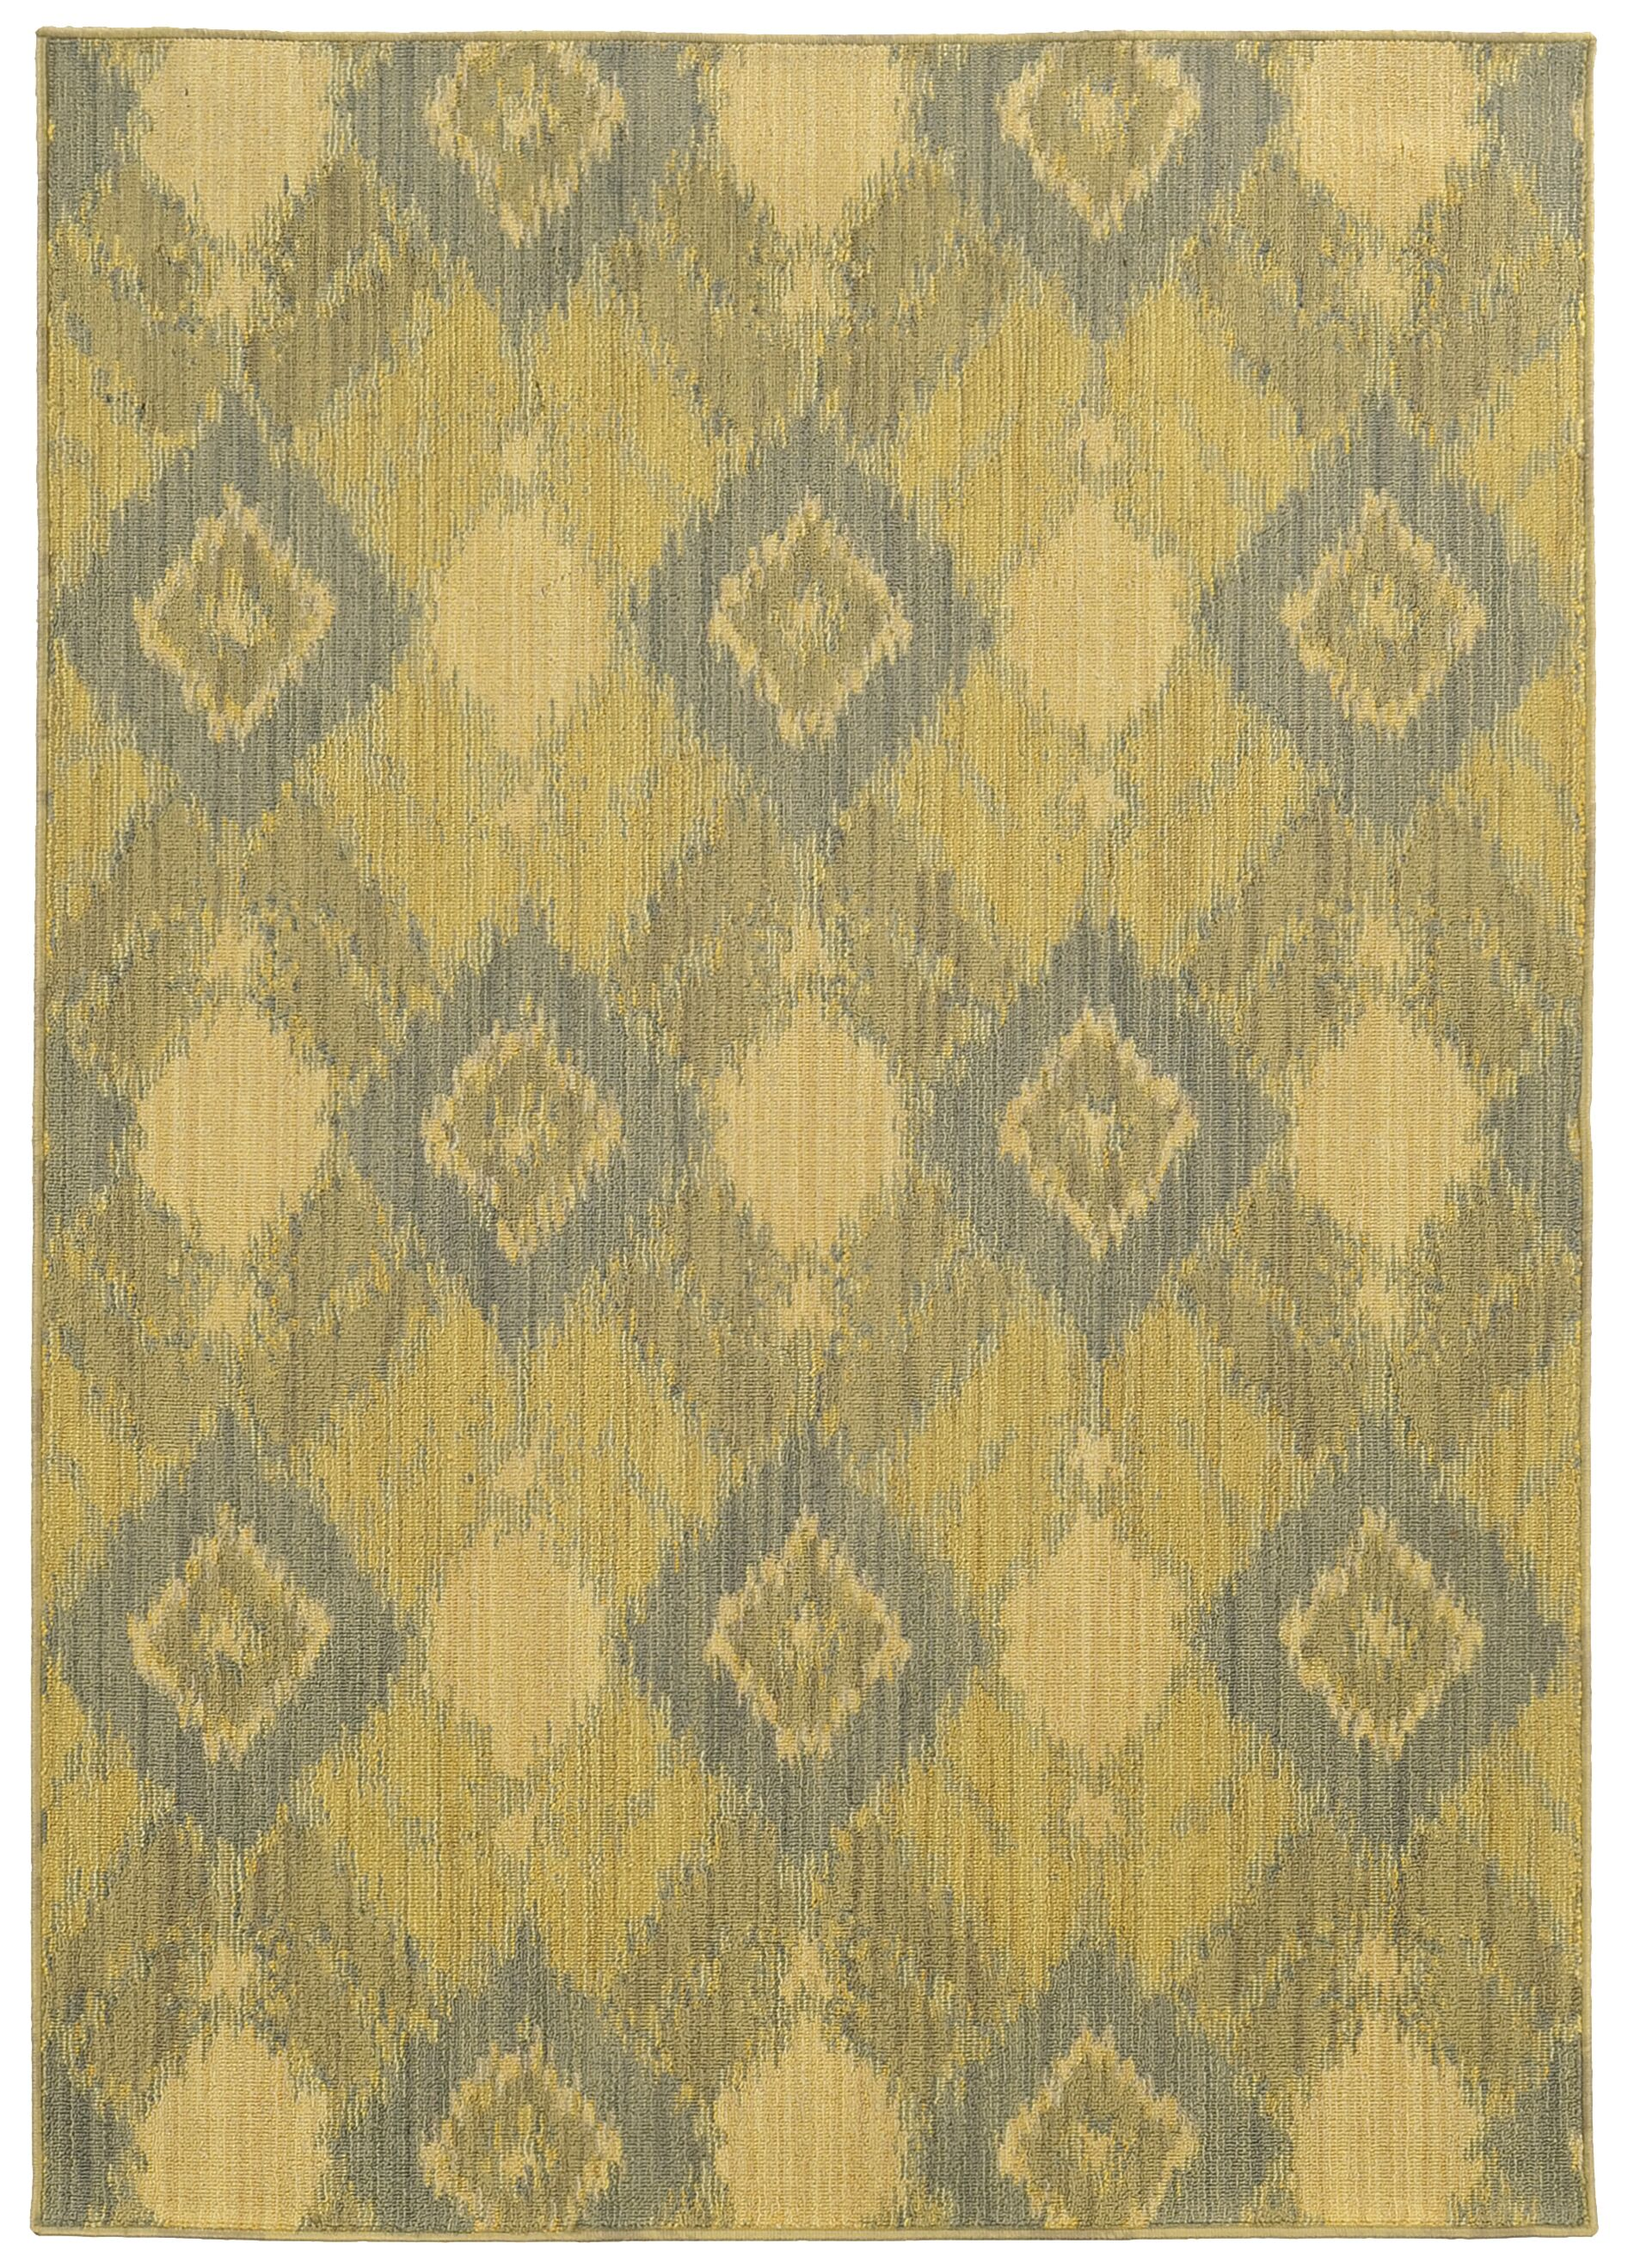 Tommy Bahama Cabana Green / Blue Geometric Indoor/Outdoor Area Rug Rug Size: Rectangle 6'7